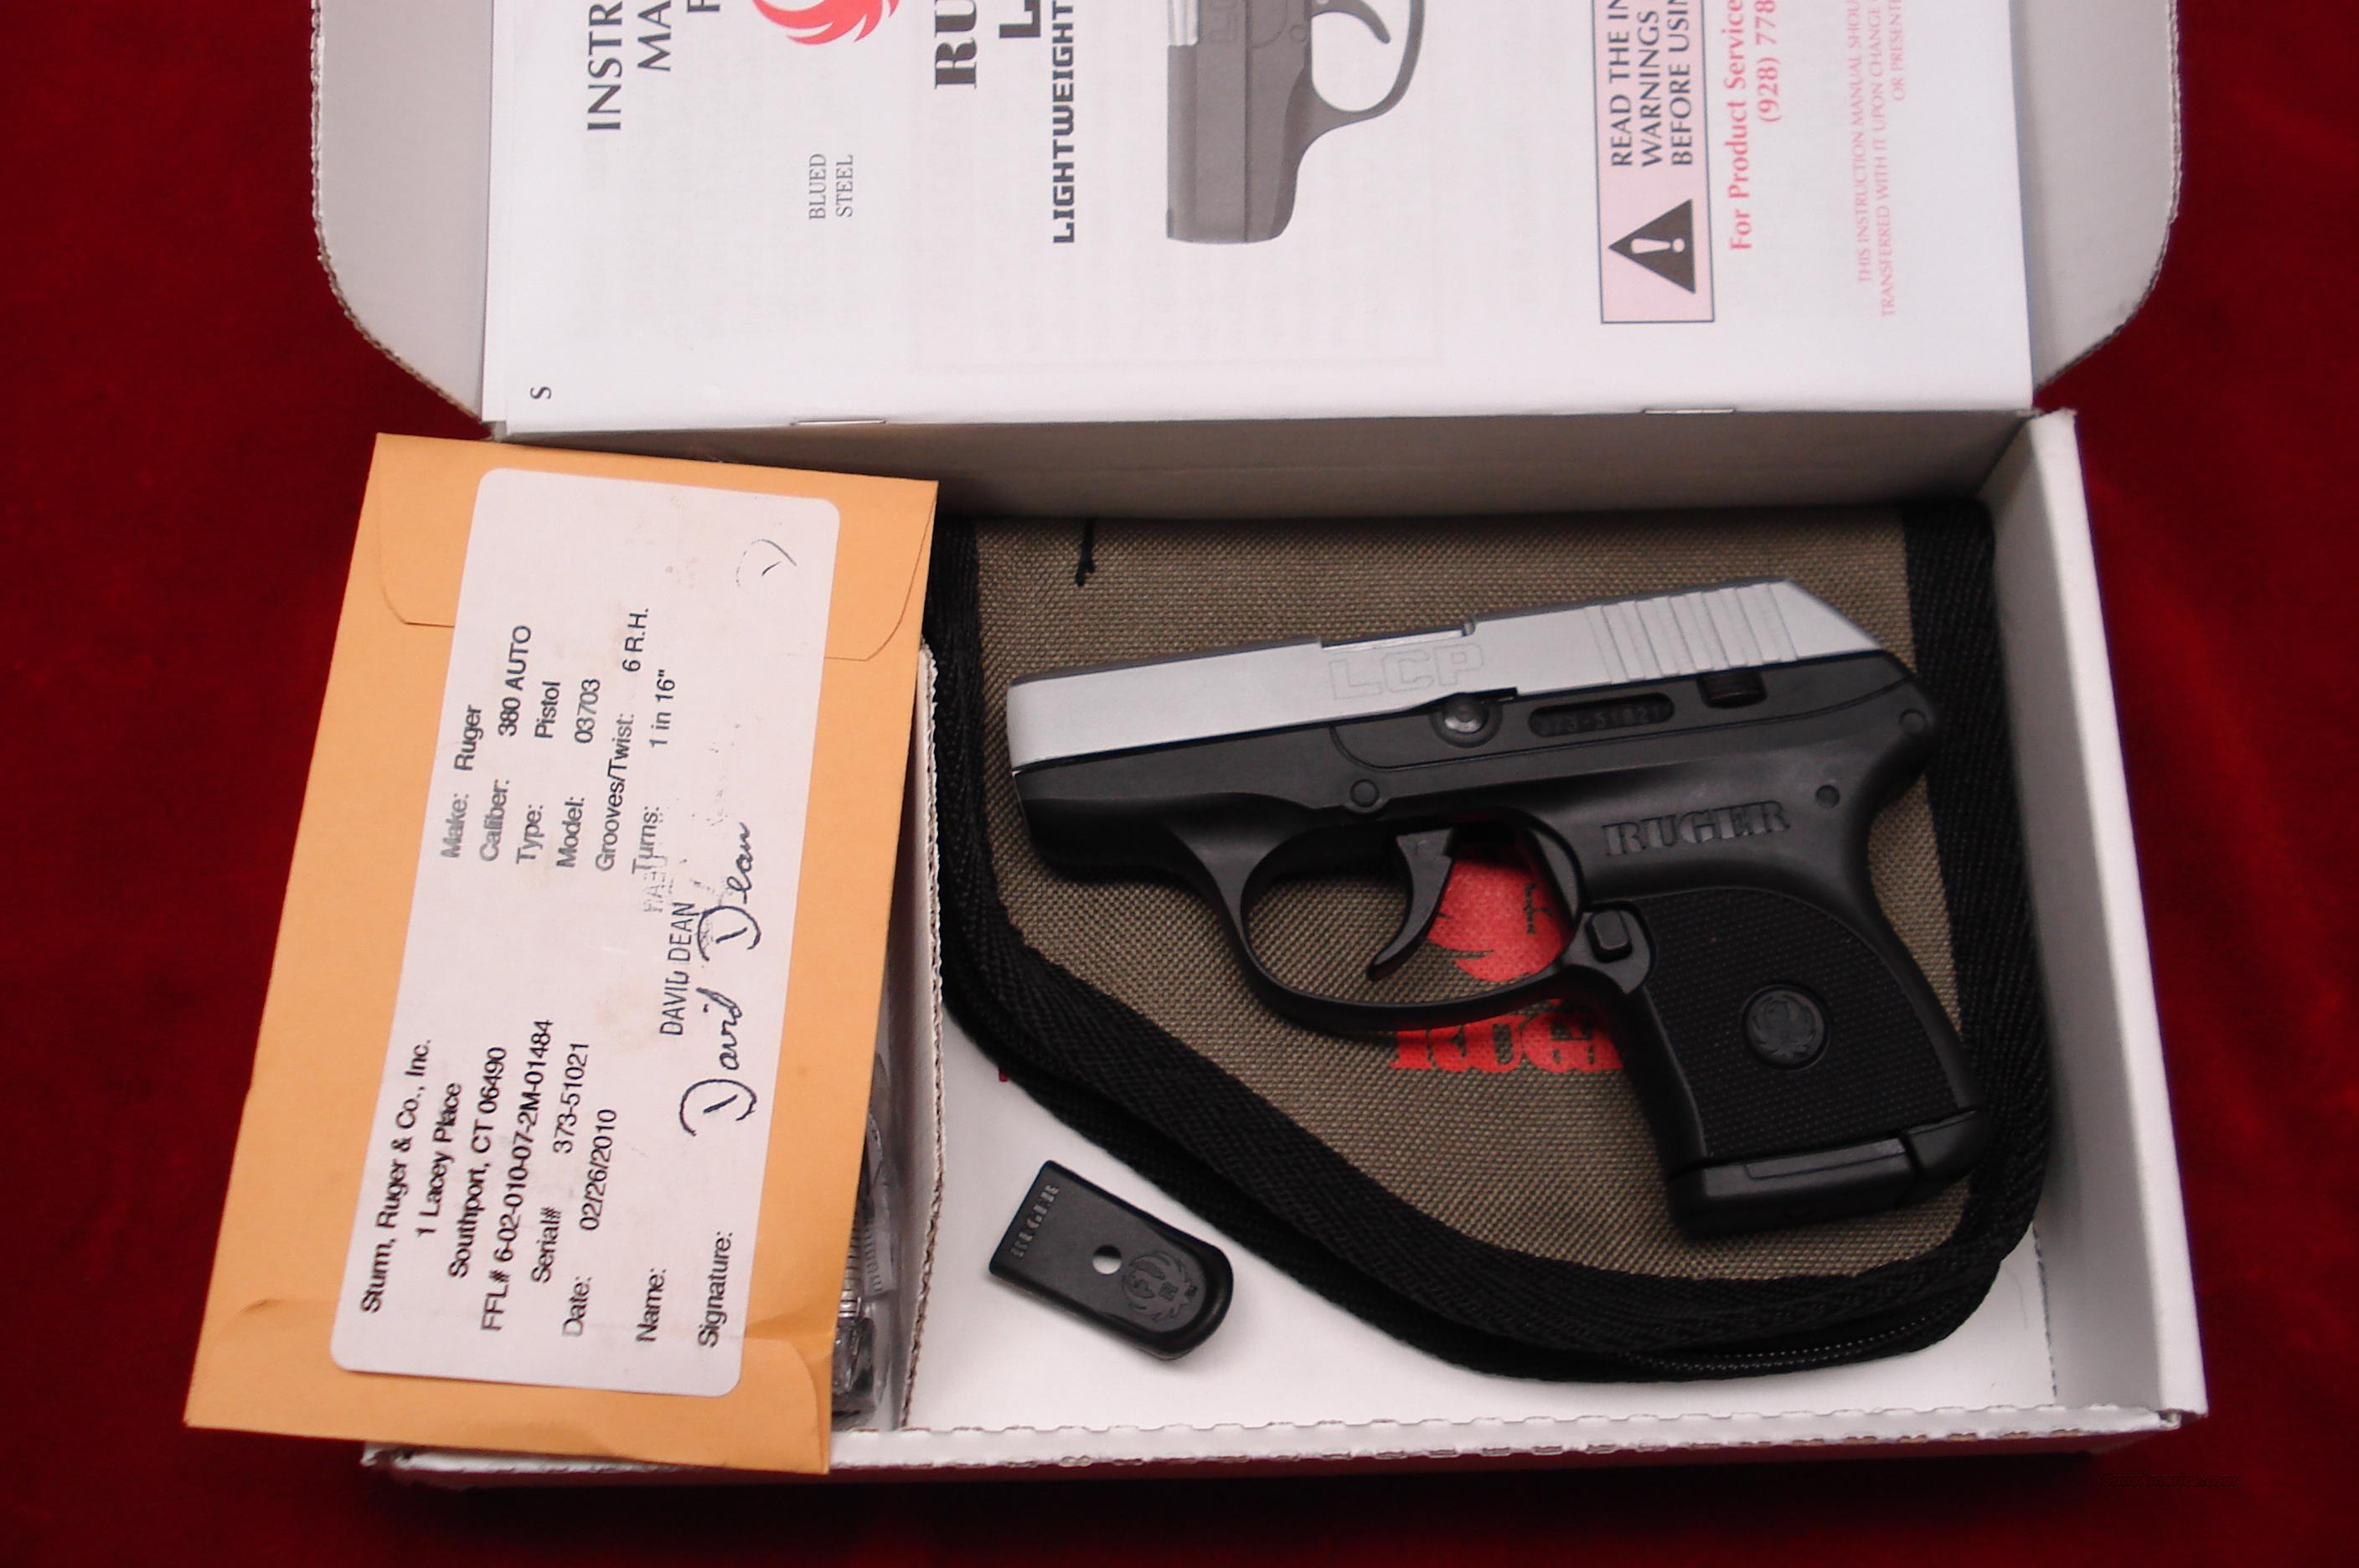 RUGER LCP HARD CHROME **NEW RELEASE** (Lightweight Compact Pistol) 380CAL. NEW  Guns > Pistols > Ruger Semi-Auto Pistols > LCP